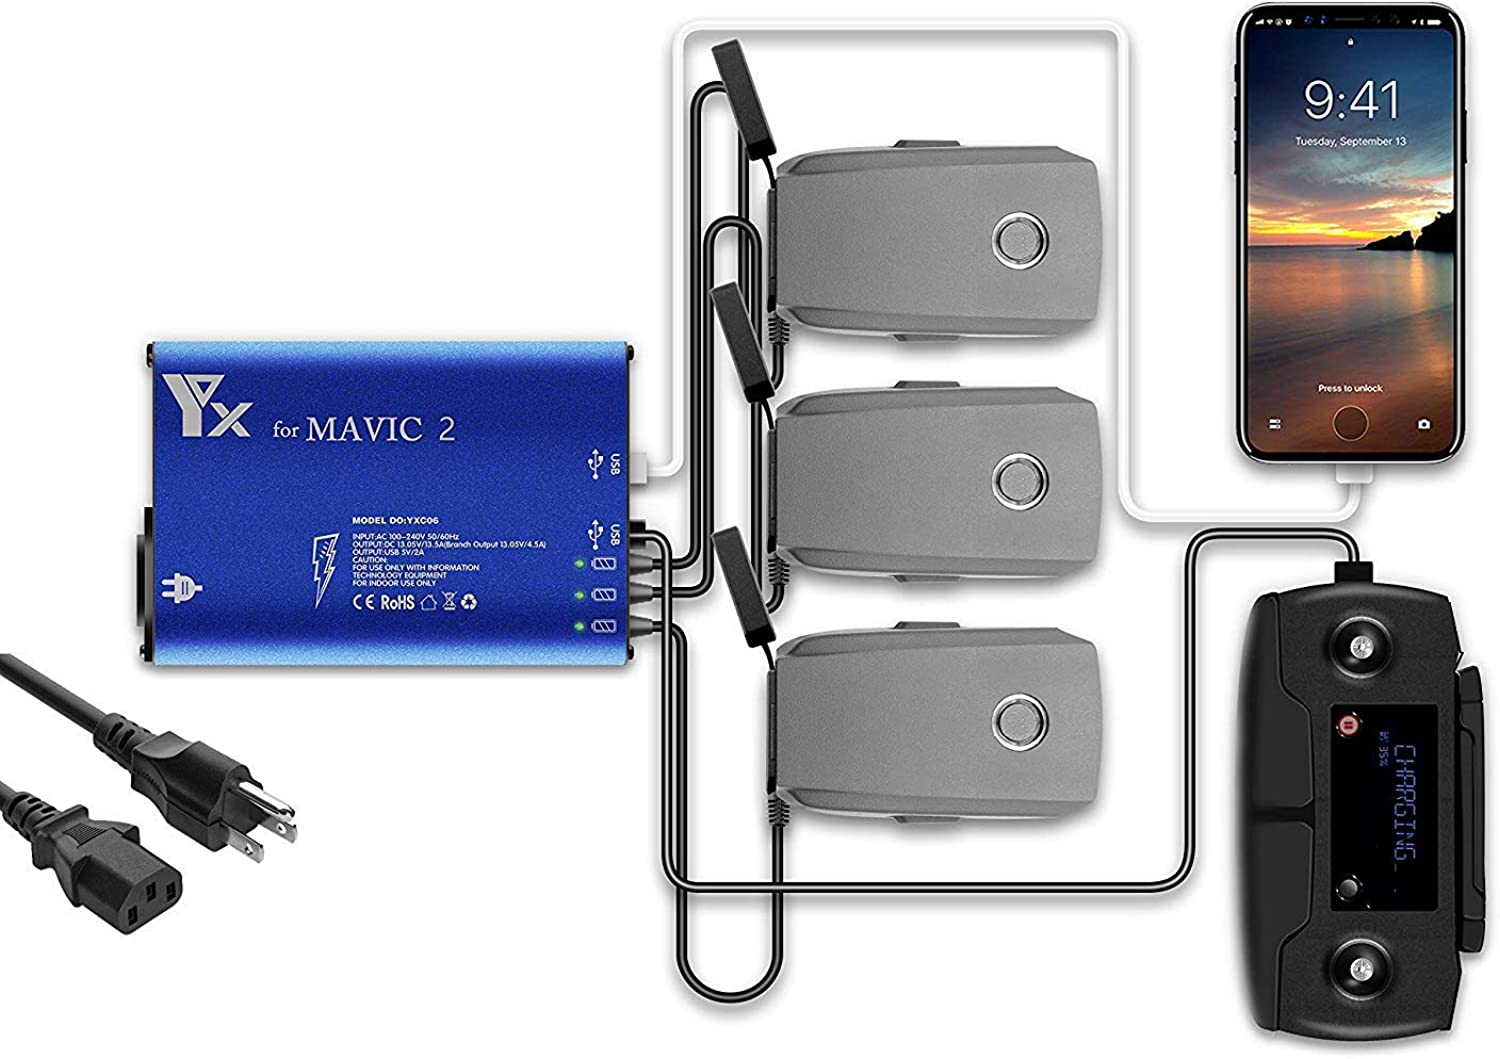 Mavic 2 Battery Charger, Accessories for DJI Mavic 2 Pro Zoom, 5 in 1 Rapid Parallel Battery Charging Hub Station, 3 Batteries, 2 USB Ports